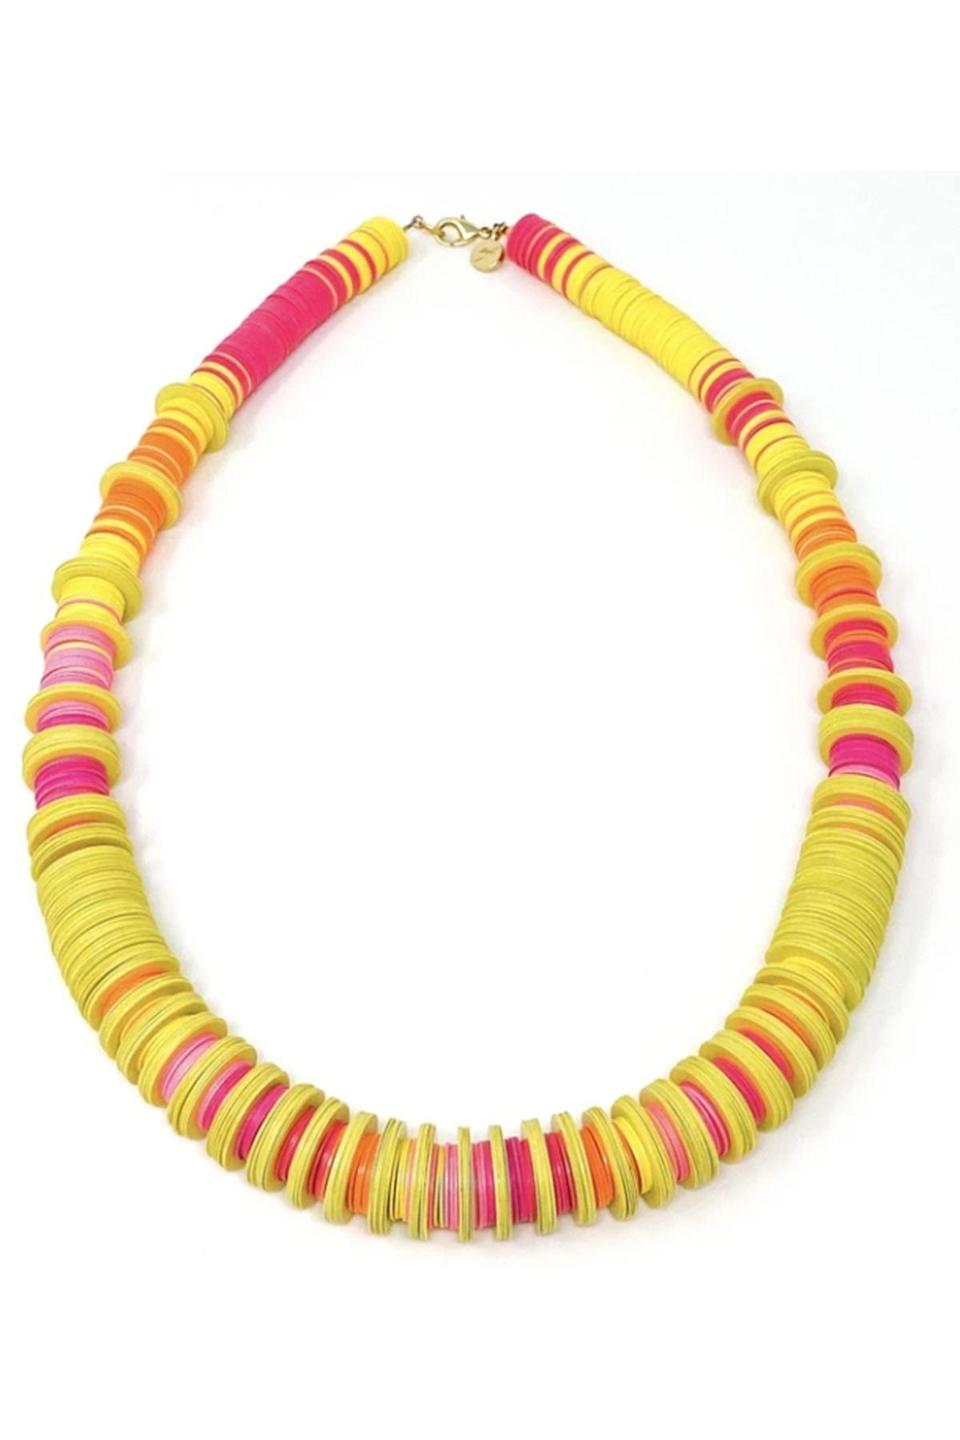 """<p><strong>Elsie Frieda</strong></p><p>elsiefrieda.com</p><p><strong>$255.00</strong></p><p><a href=""""https://elsiefrieda.com/collections/necklaces-by-elsie-frieda/products/copy-of-the-ranny-collection-black-fushia-blush-necklace"""" rel=""""nofollow noopener"""" target=""""_blank"""" data-ylk=""""slk:Shop Now"""" class=""""link rapid-noclick-resp"""">Shop Now</a></p><p>Go bold for the summer with this necklace by Elsie Frieda. It'll look amazing with a maxi dress or a white tee shirt. </p>"""